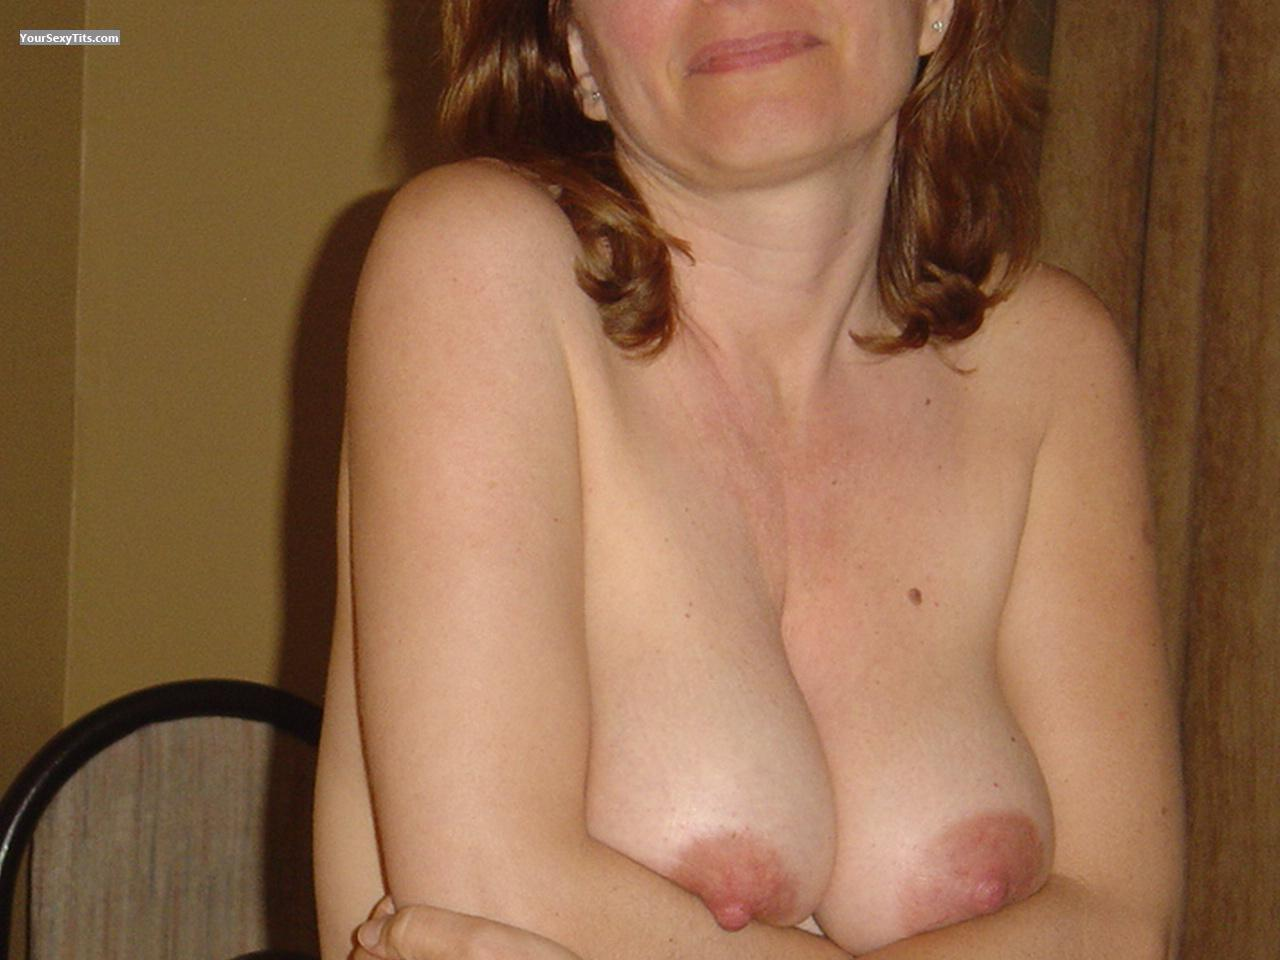 Tit Flash: Medium Tits - Nada from United States